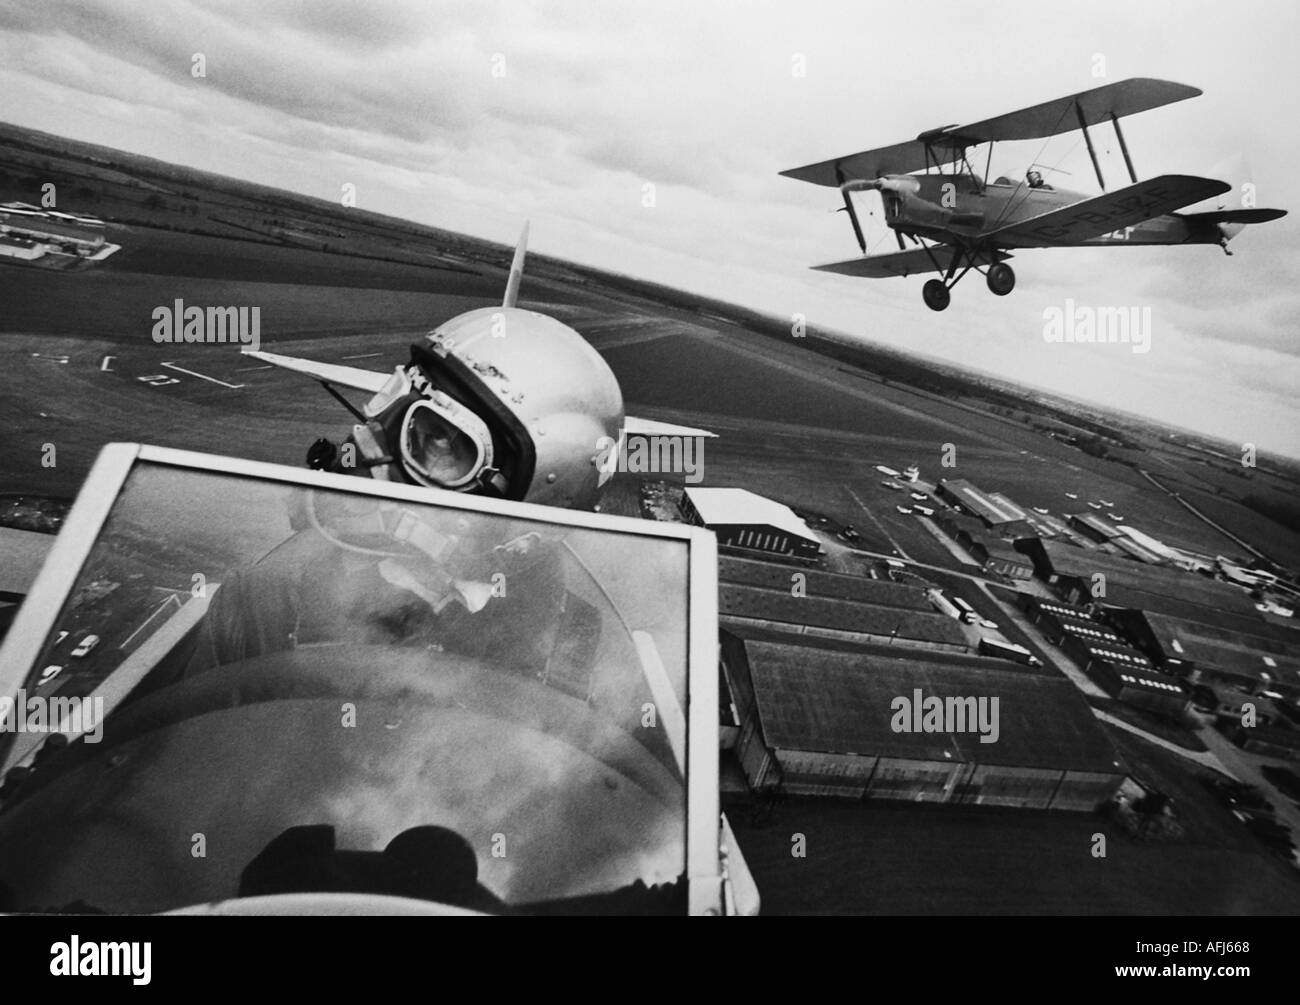 Tiger Moth aircraft fly over the former RAF Flying Training School at Sywell, UK. - Stock Image